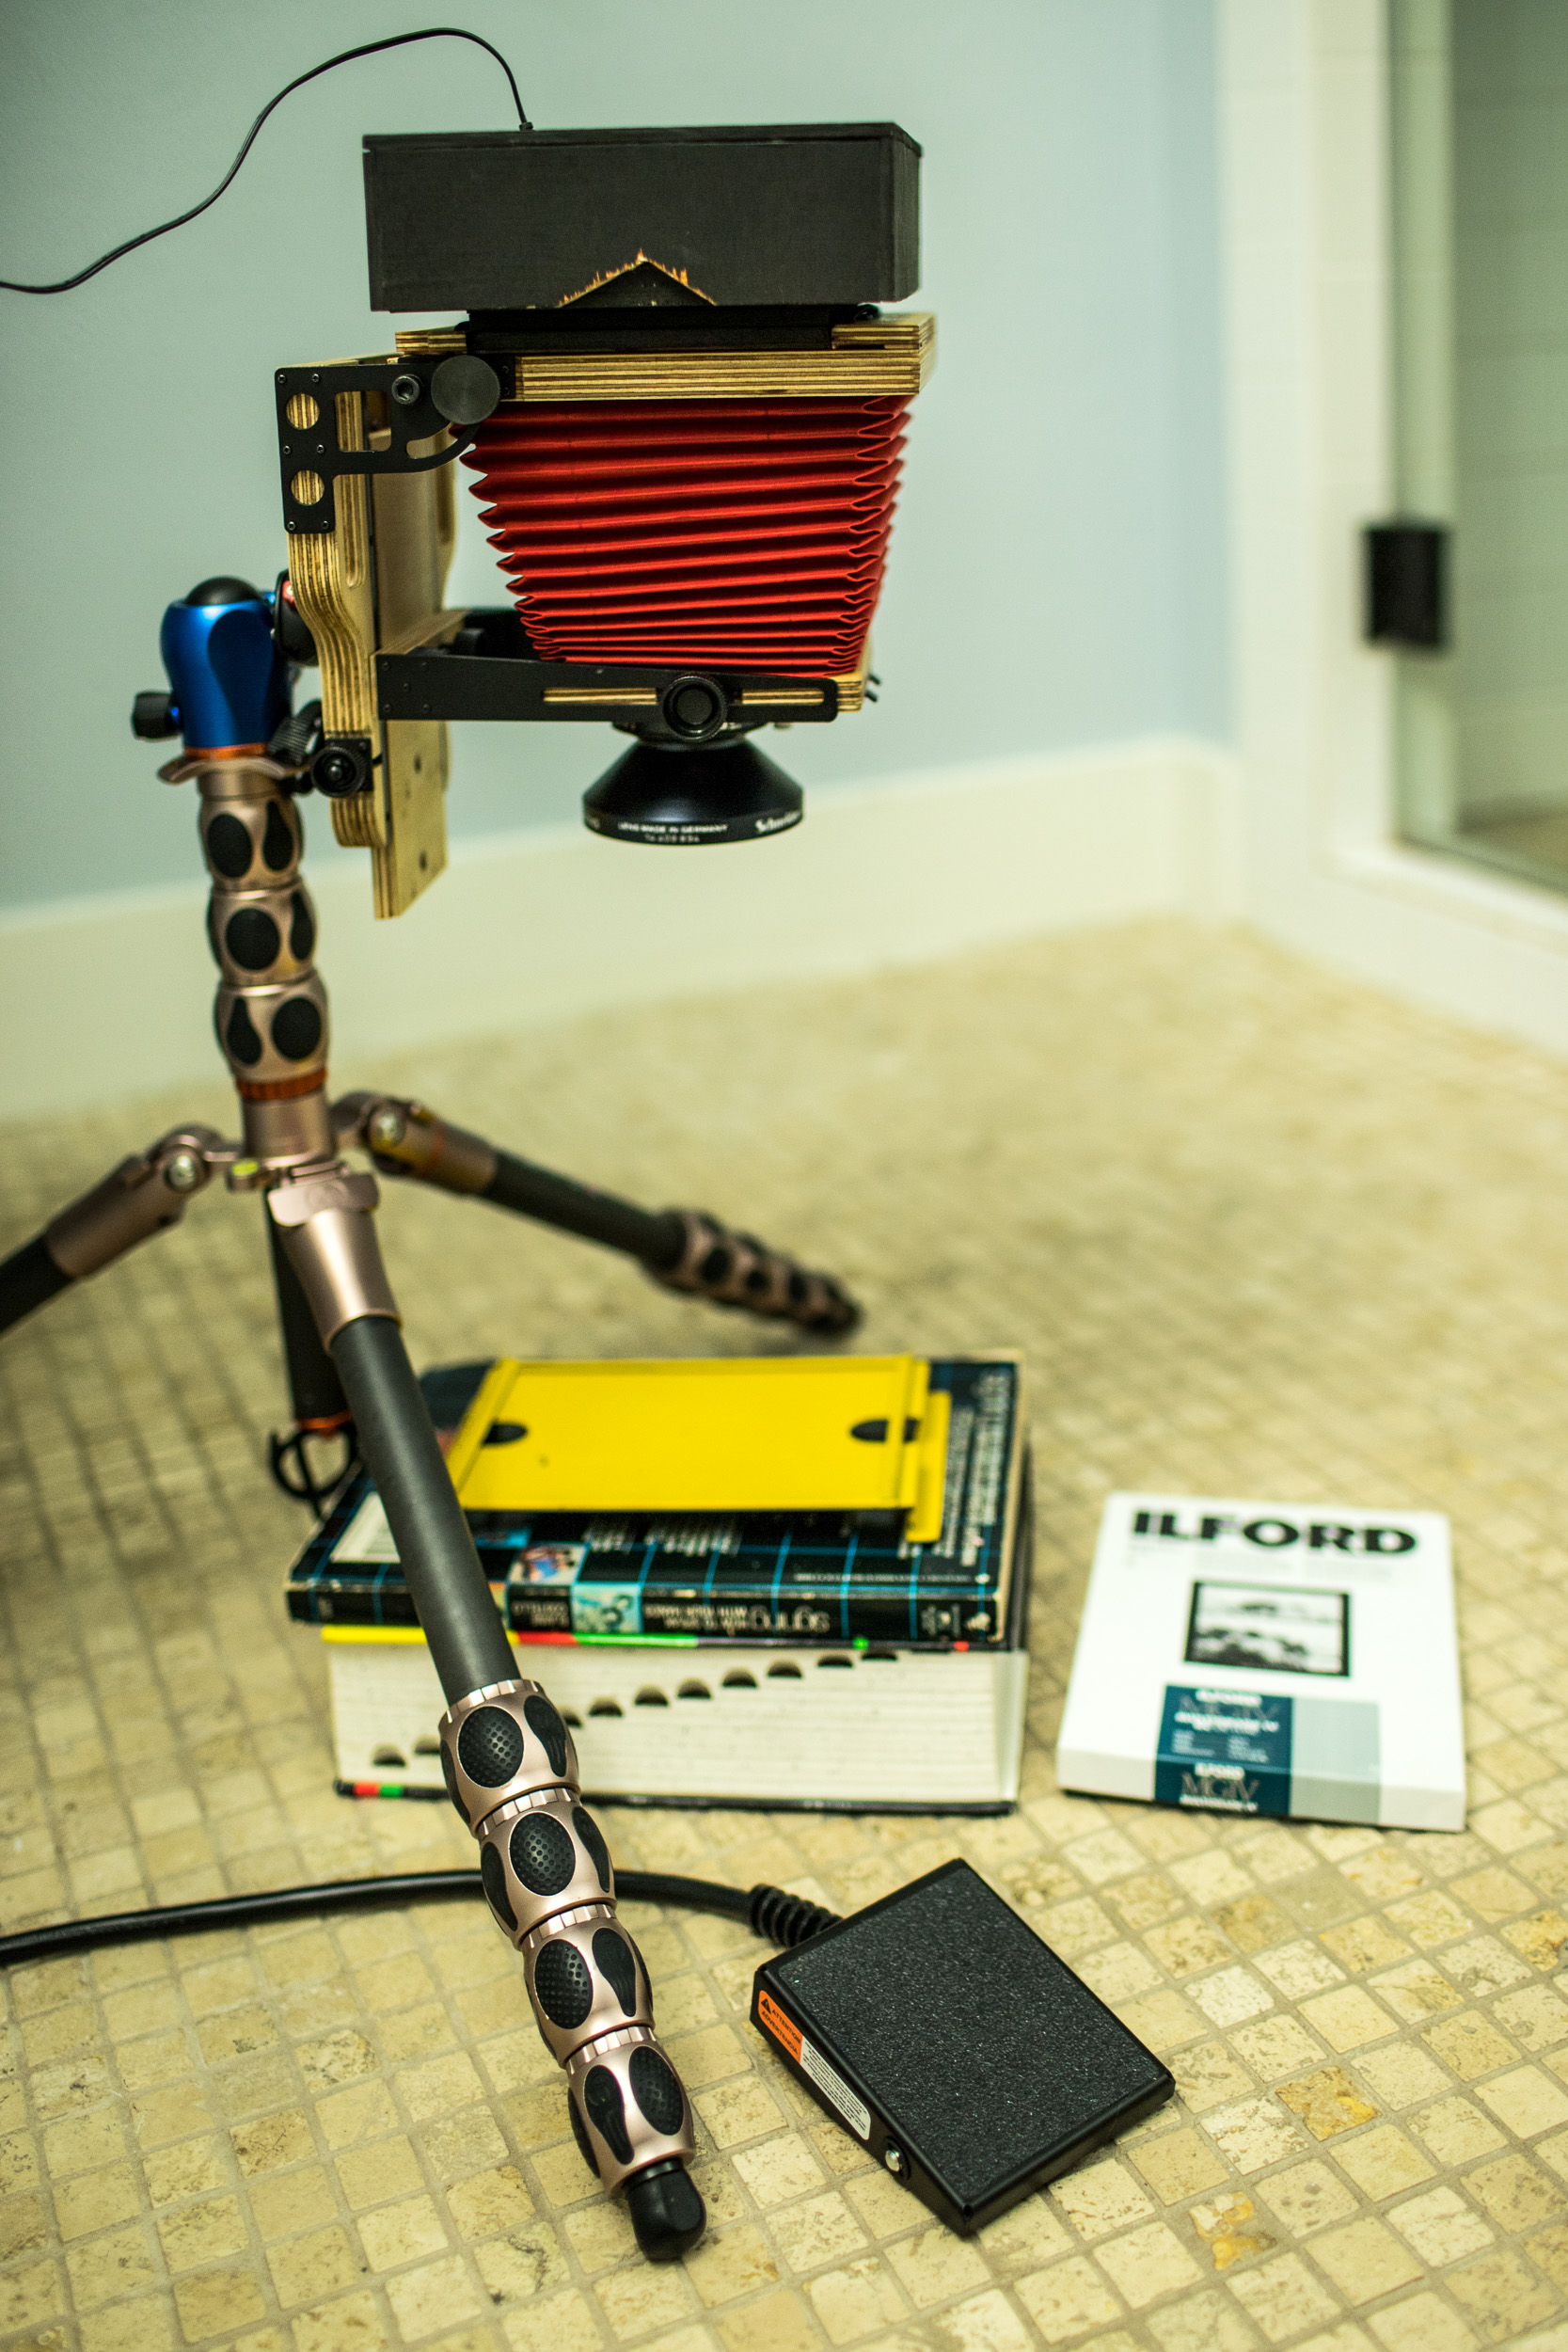 DIY enlarger from an Intrepid 4x5 camera